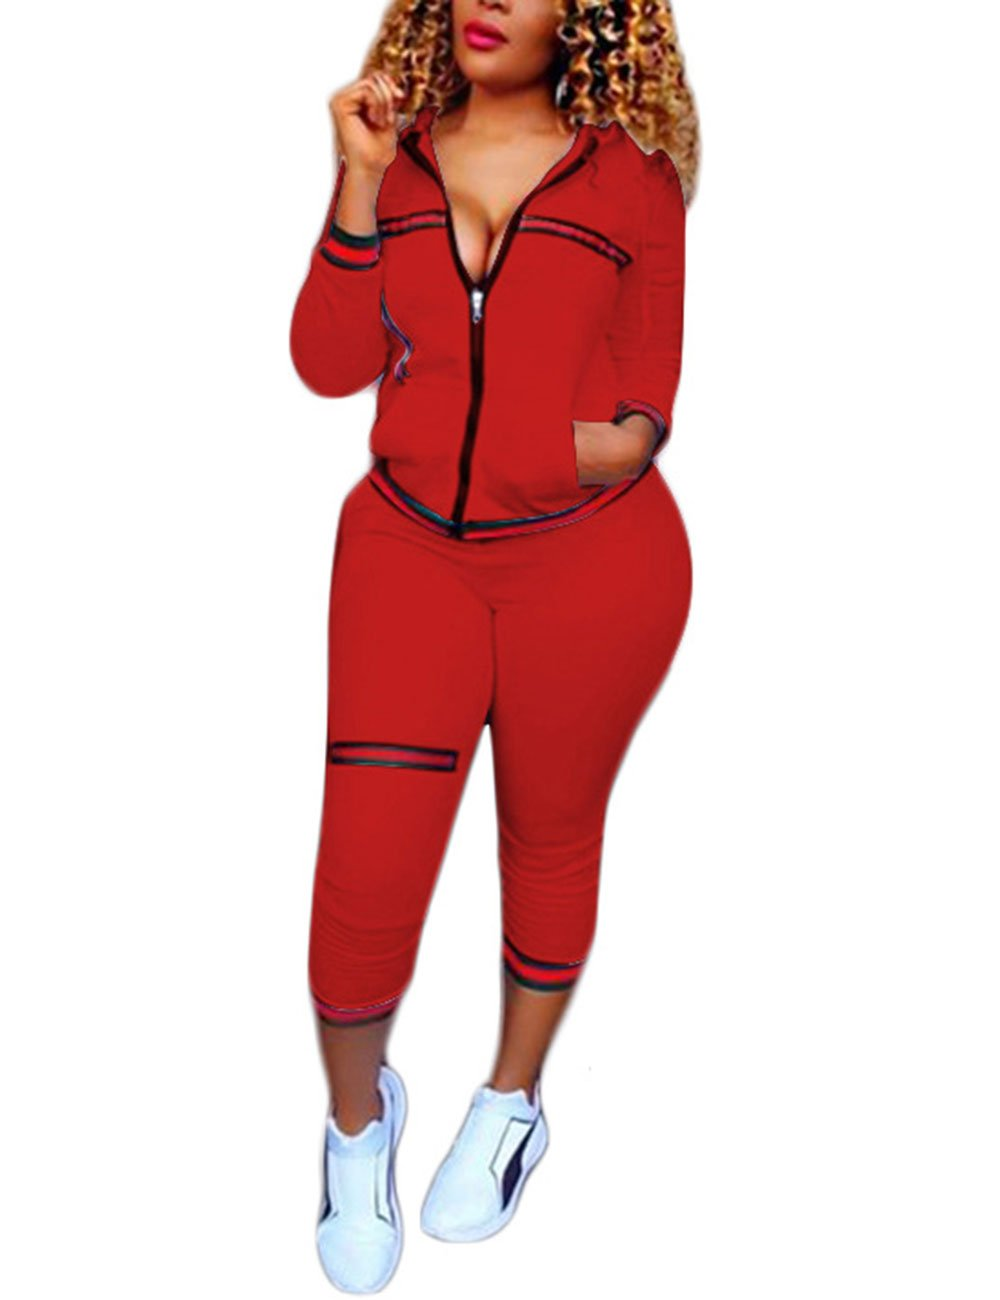 Akmipoem Women's 2 Pieces Outfits Long Sleeve Zipper Jacket and Pants Sweatsuits Tracksuits